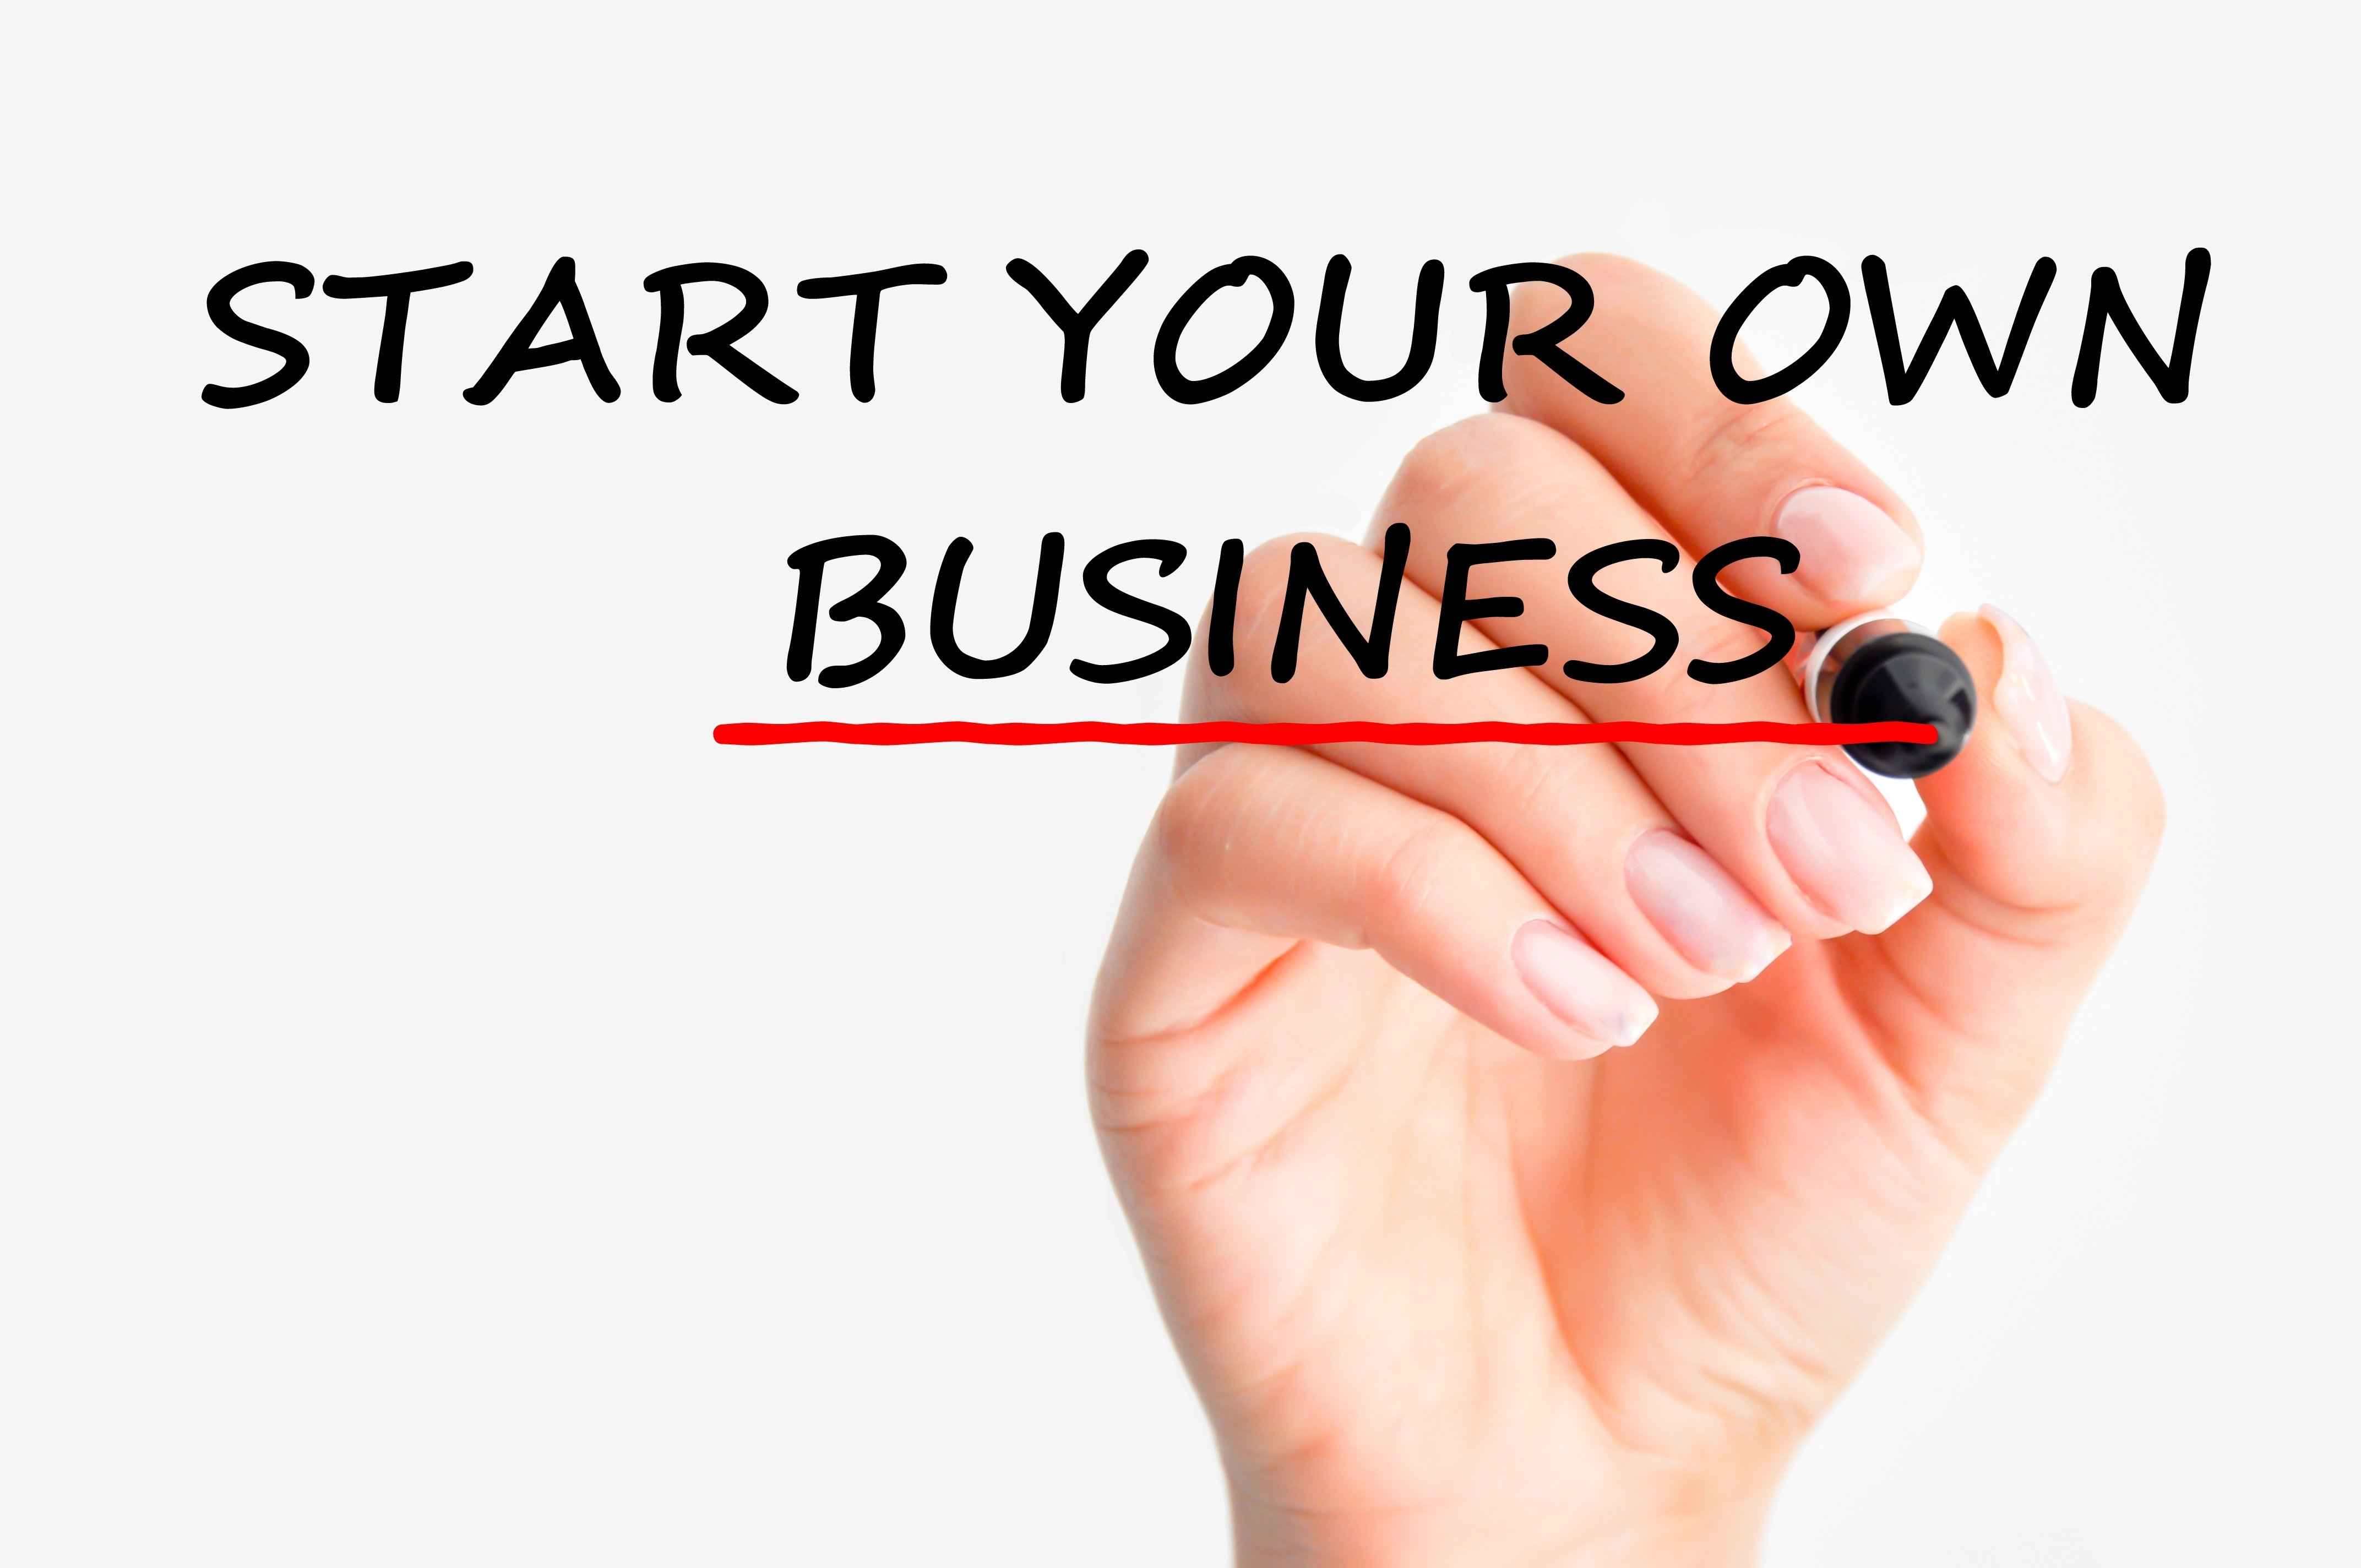 10 low cost ideas to start your own business | start your business